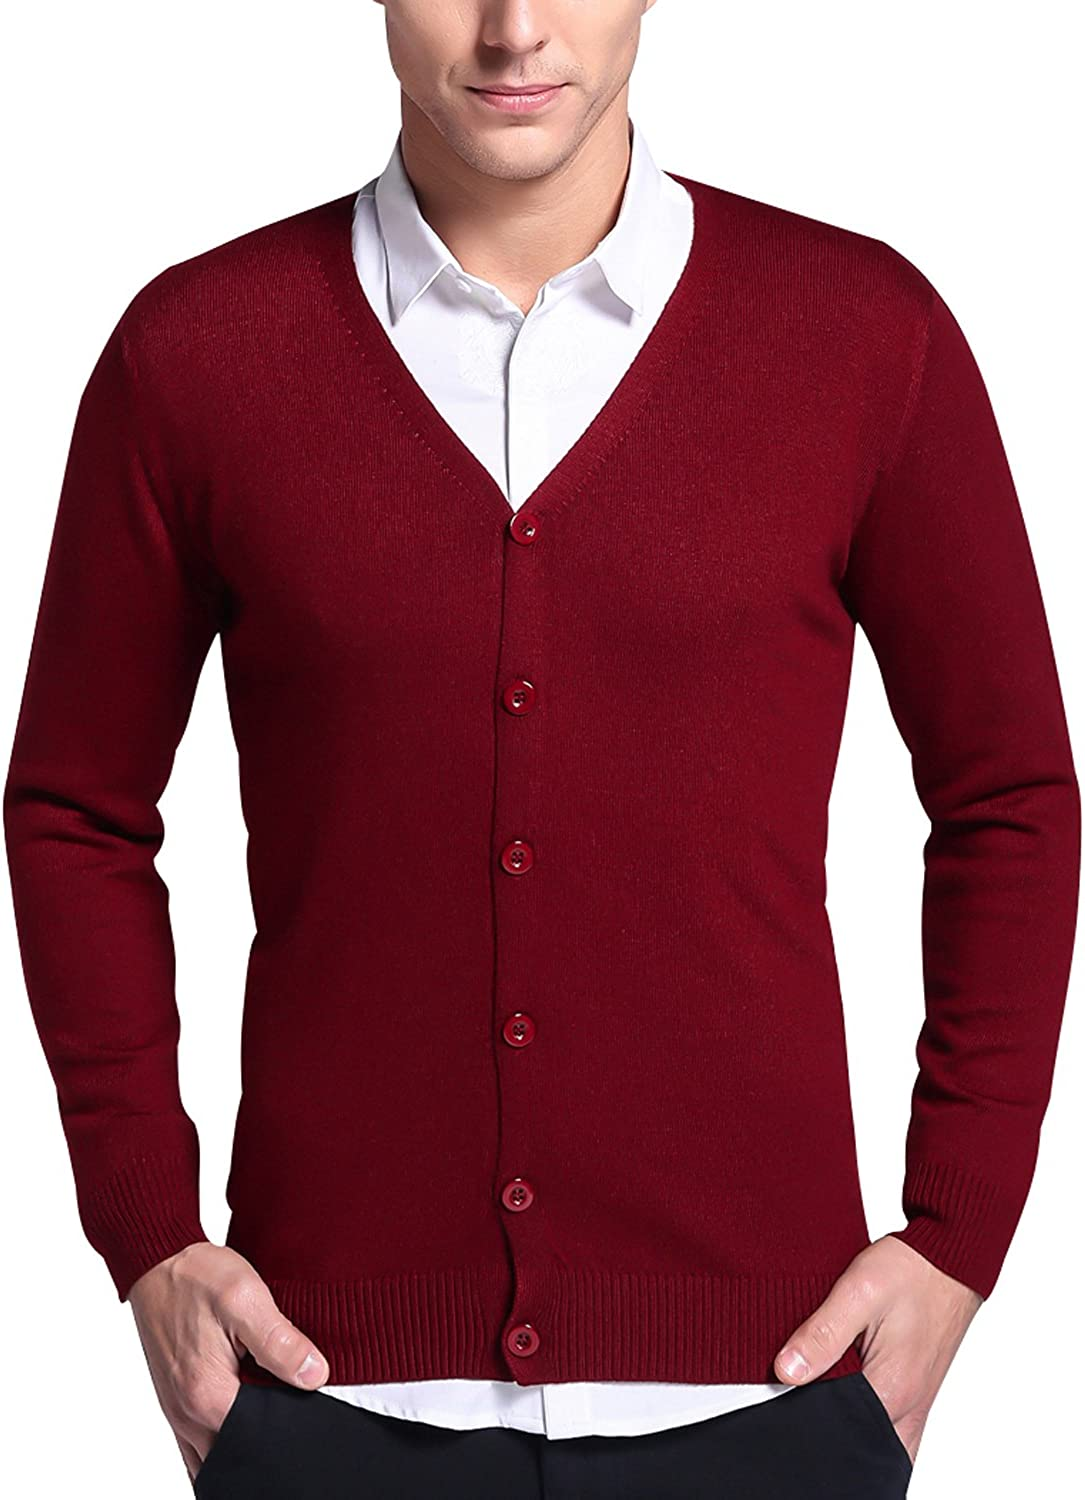 LONGMING Men's Casual Winter Cashmere V-Neck Wool Direct sale of manufacturer Ca Long Our shop OFFers the best service Sleeve